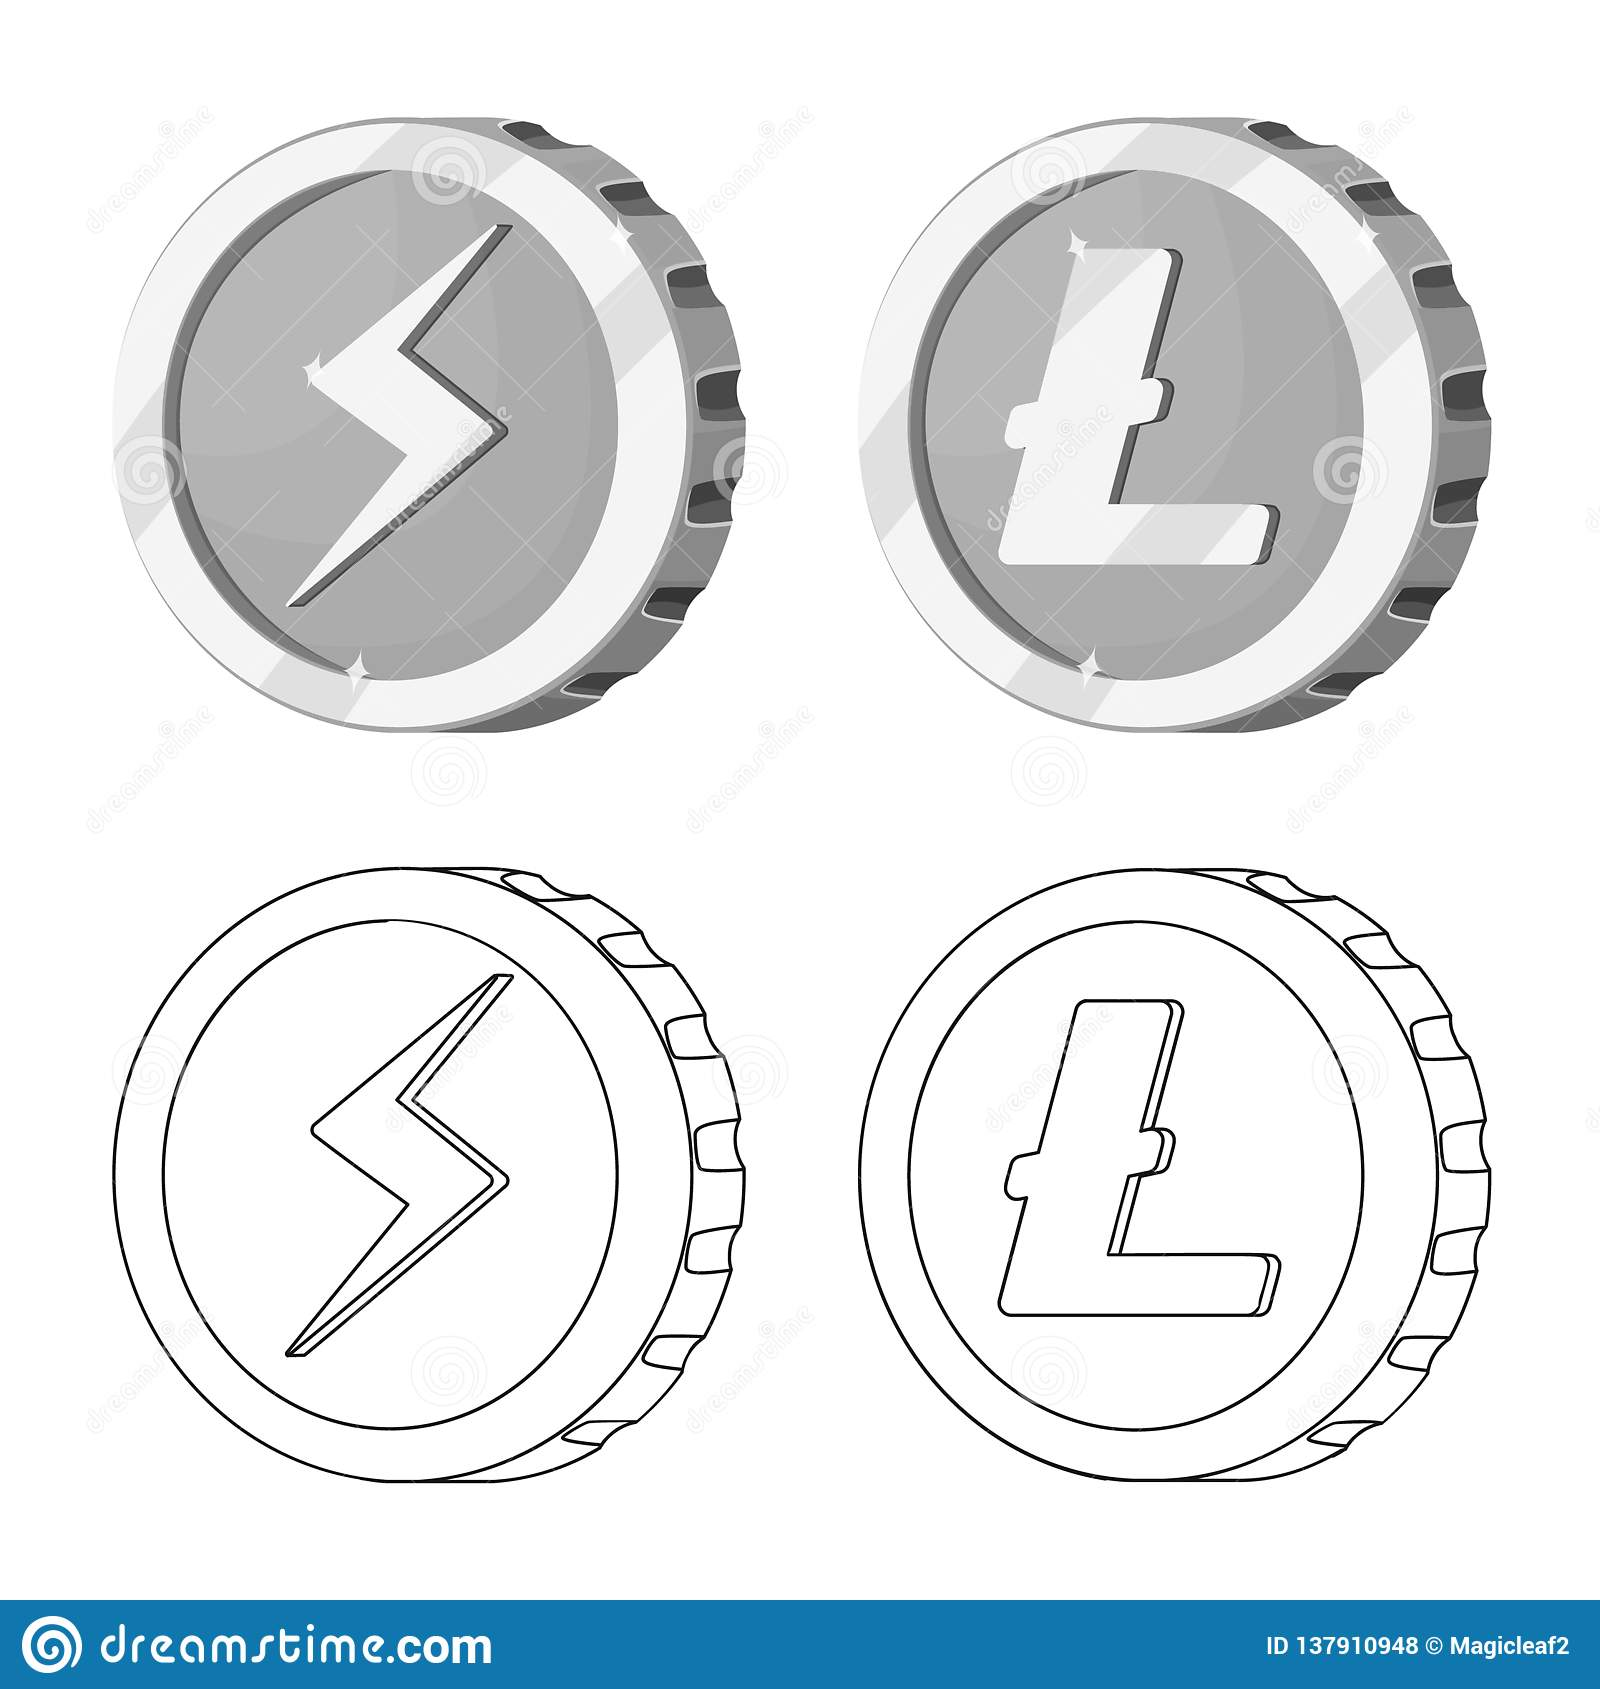 what is the trading symbol for bitcoin